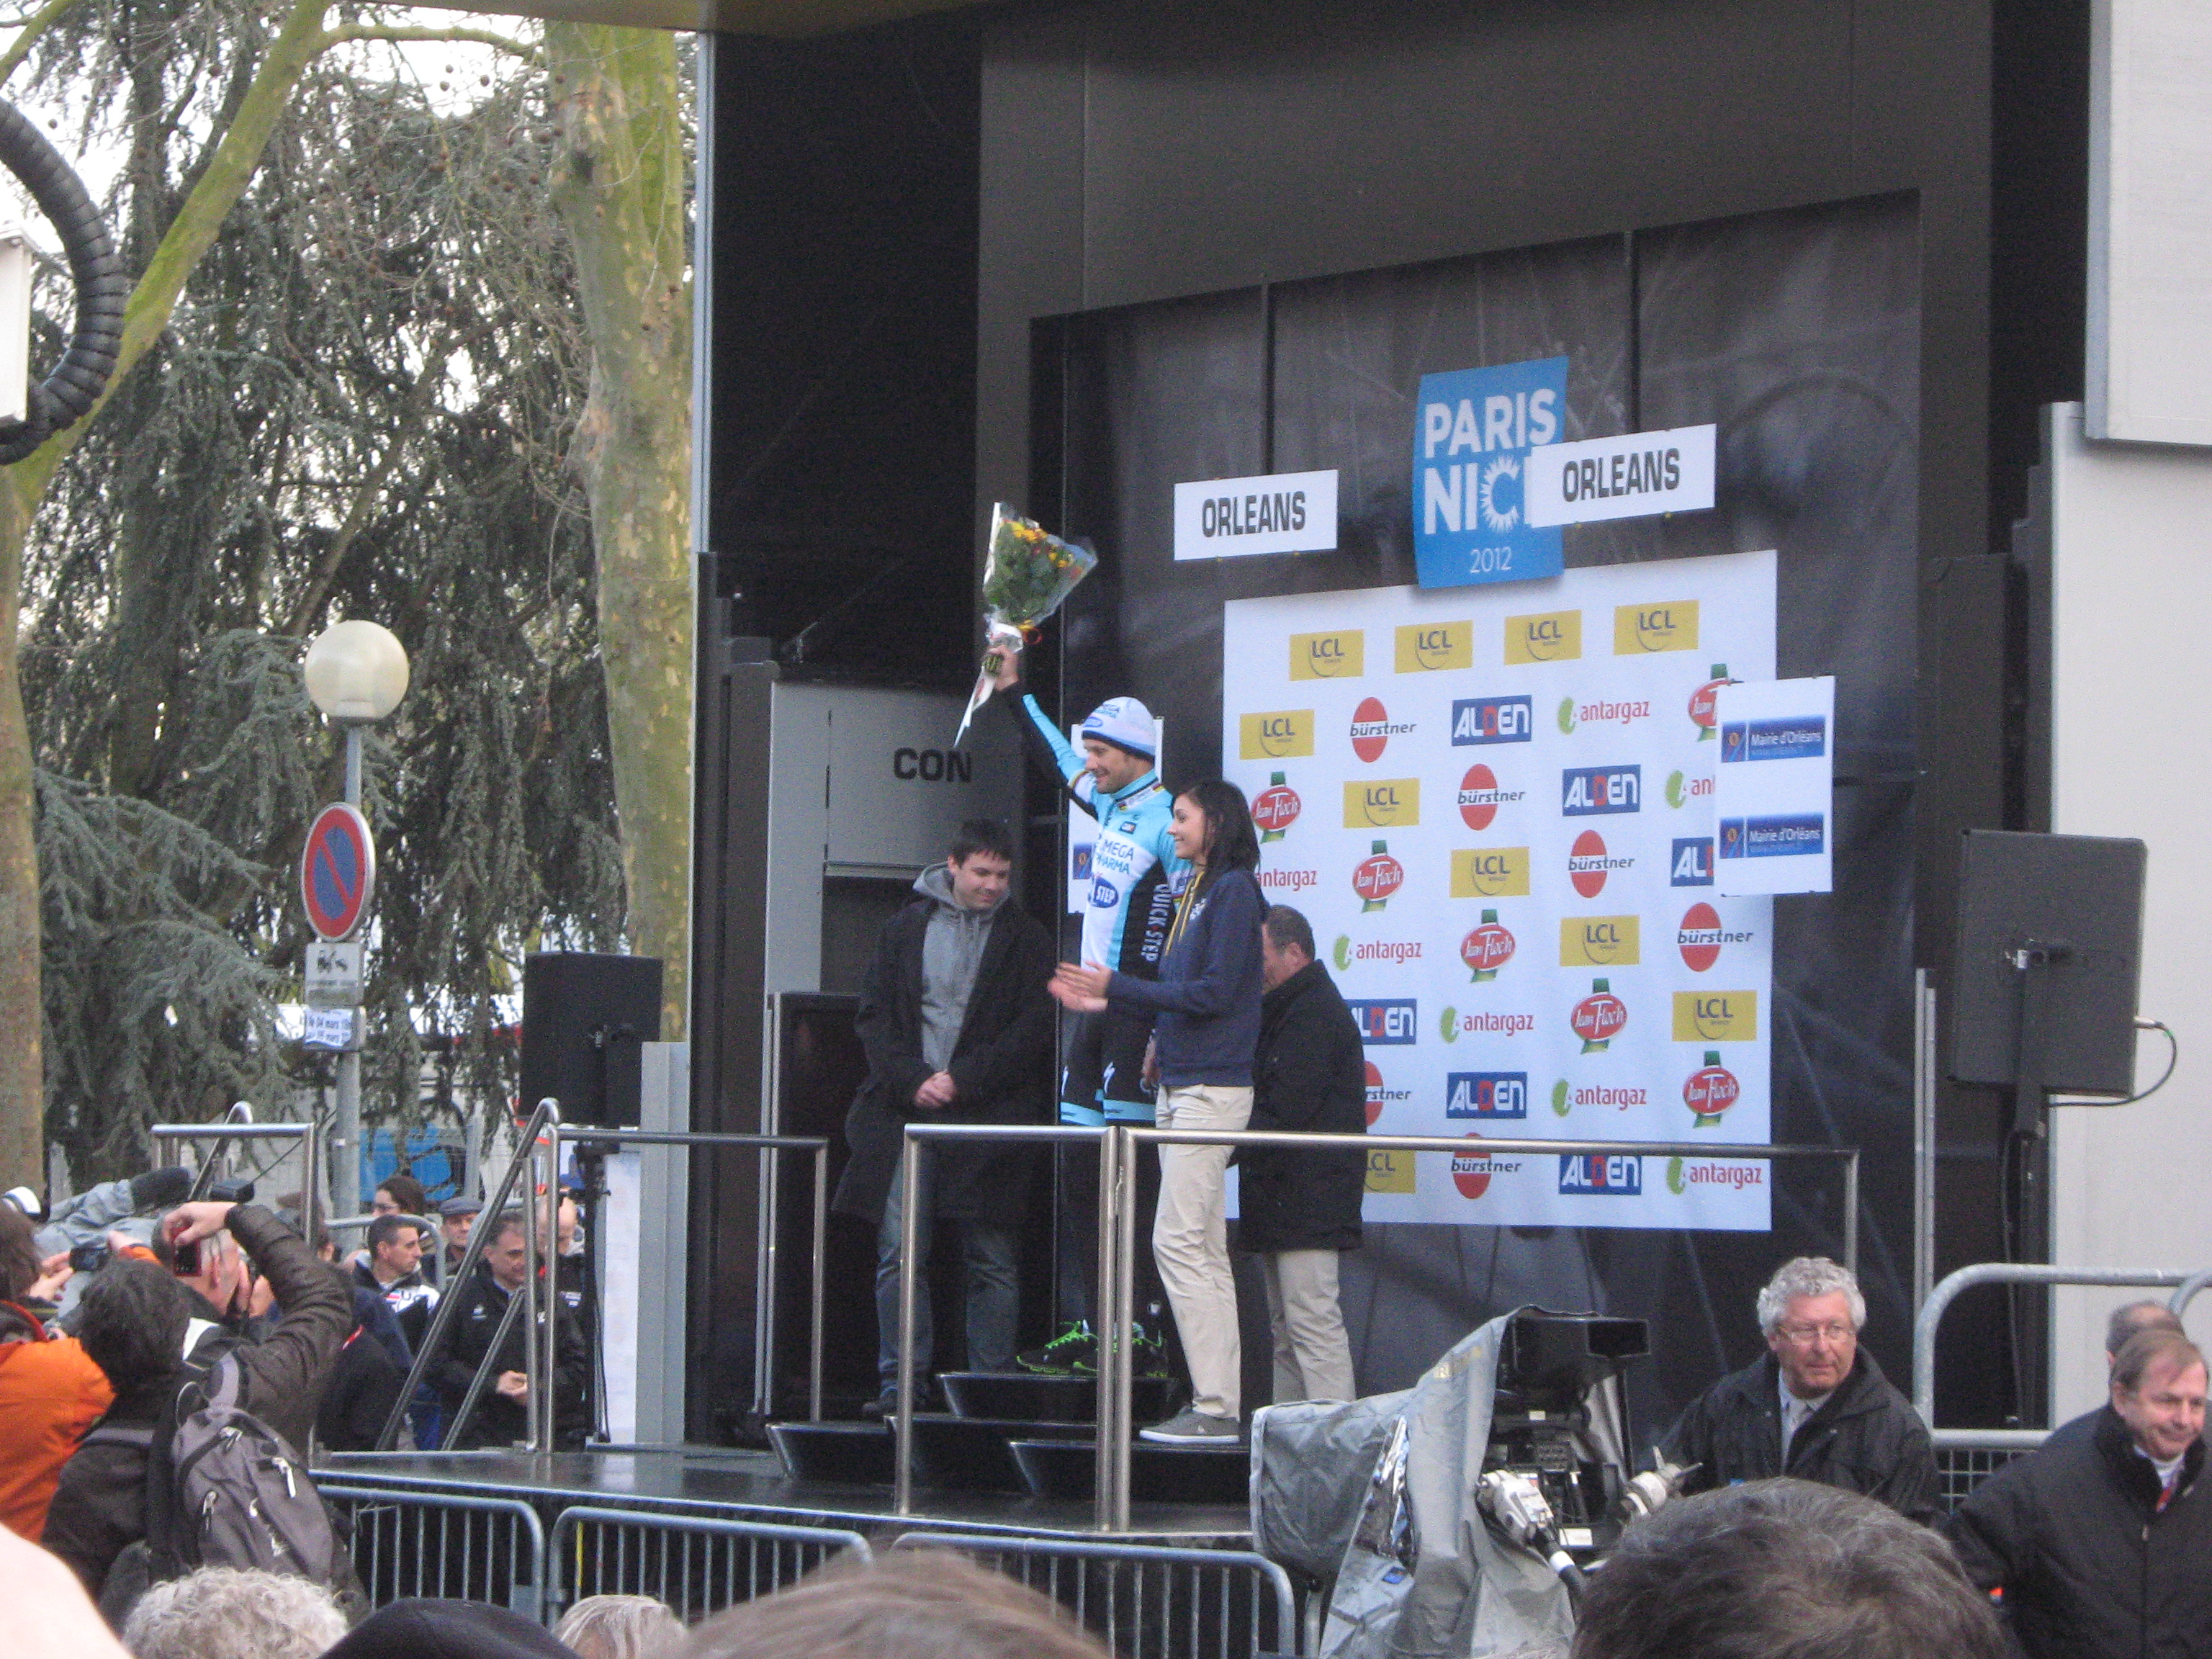 File:Paris-Nice 2012 etape2 Tom Boonen 1.JPG - Wikimedia Commons